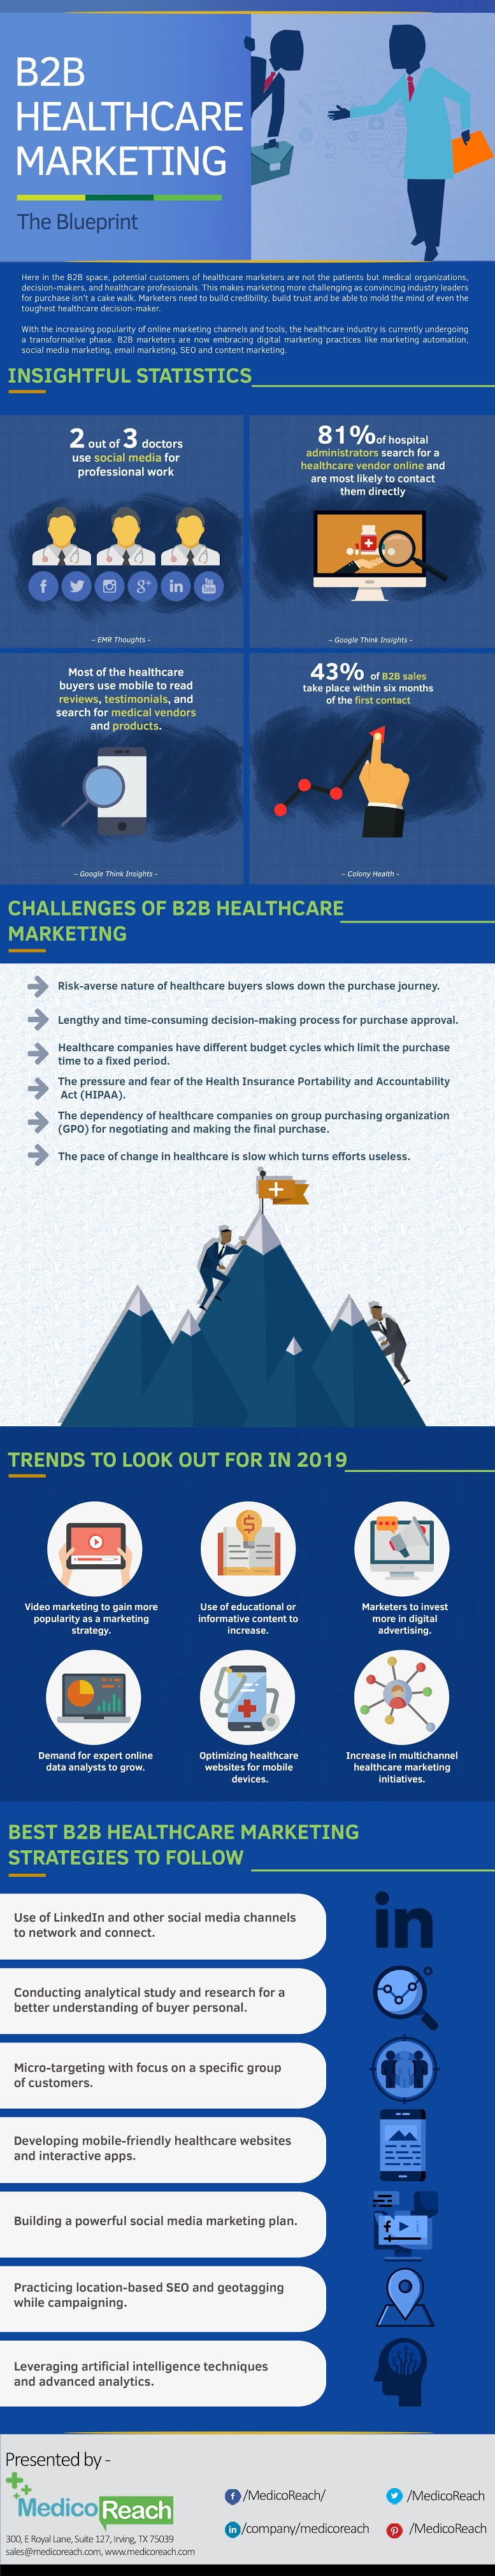 B2B Healthcare Marketing Infographic